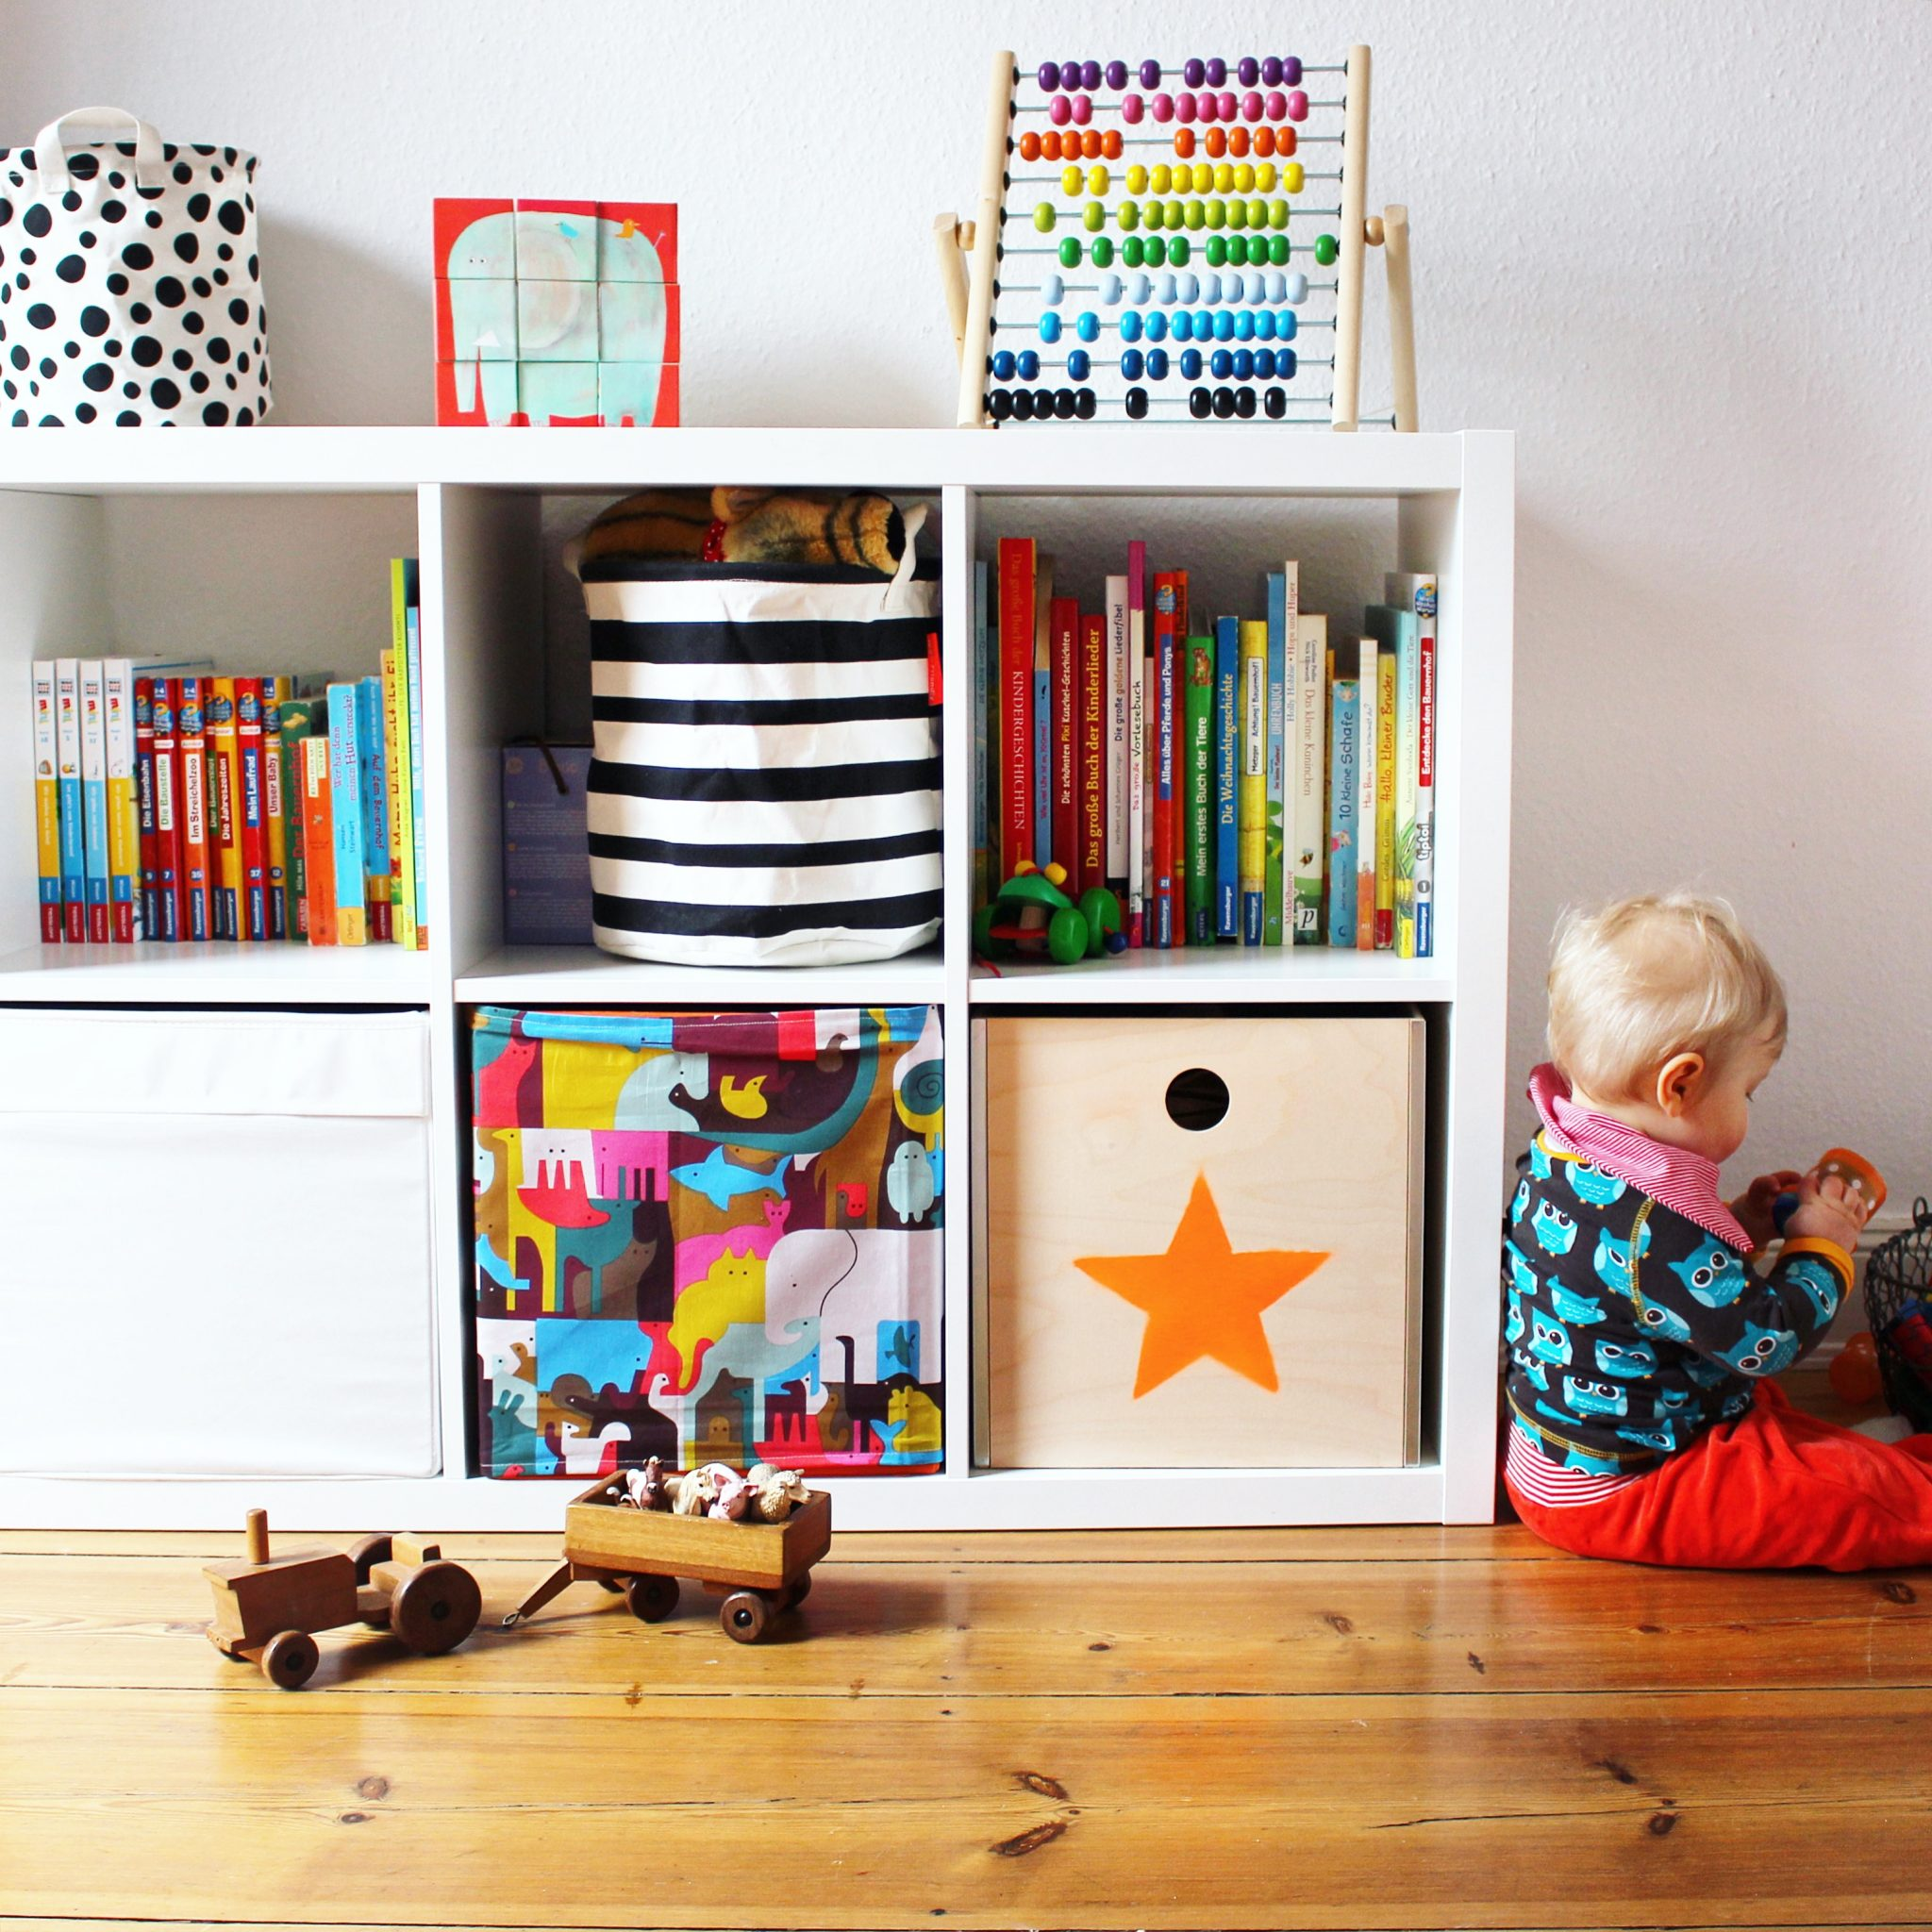 ikea bettdecken baby kopfkissen im test anna und elsa bettw sche schlechter geruch schlafzimmer. Black Bedroom Furniture Sets. Home Design Ideas